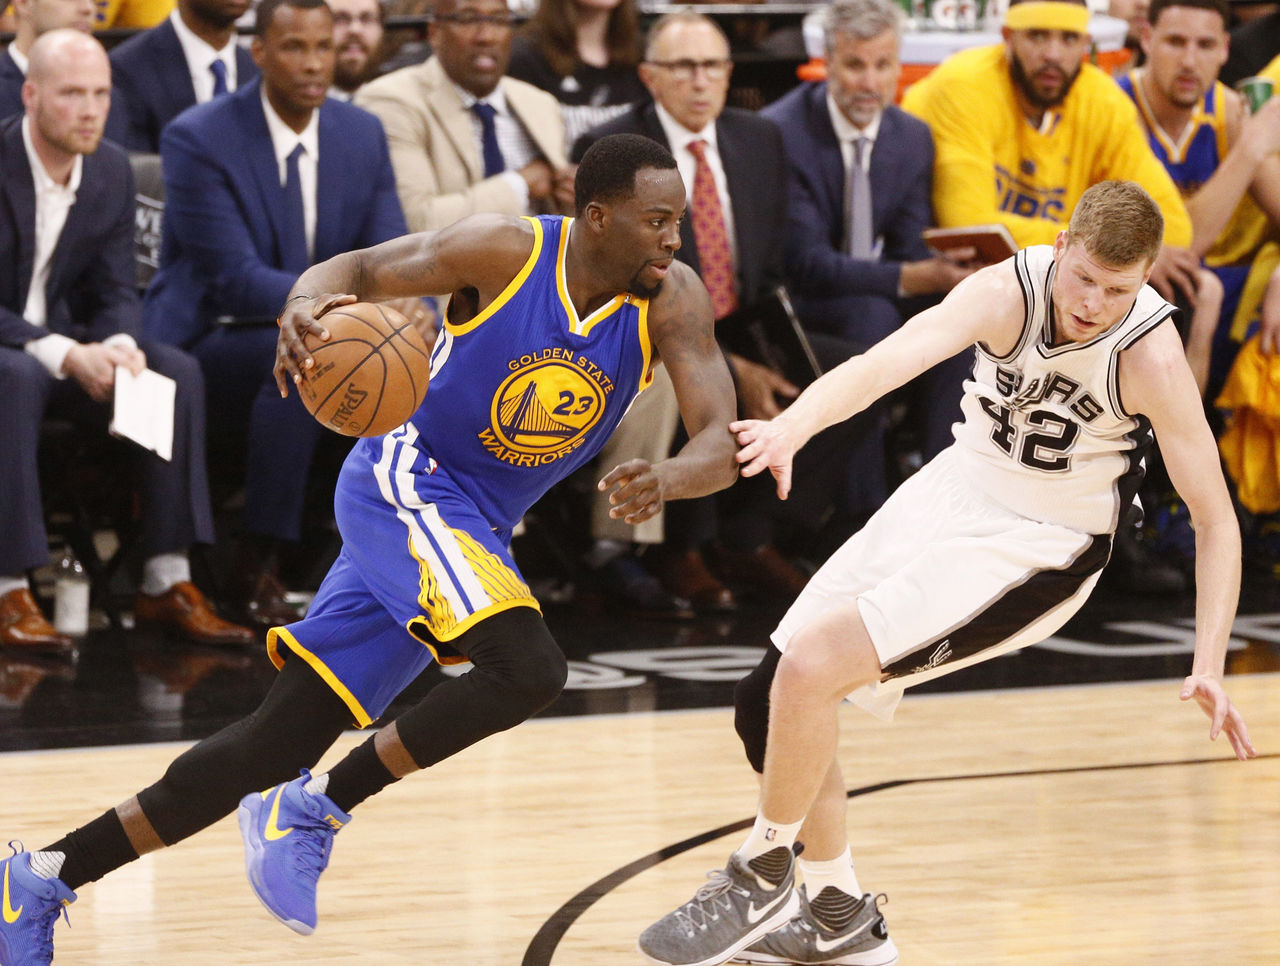 Cropped 2017 05 21t021021z 1456769565 nocid rtrmadp 3 nba playoffs golden state warriors at san antonio spurs